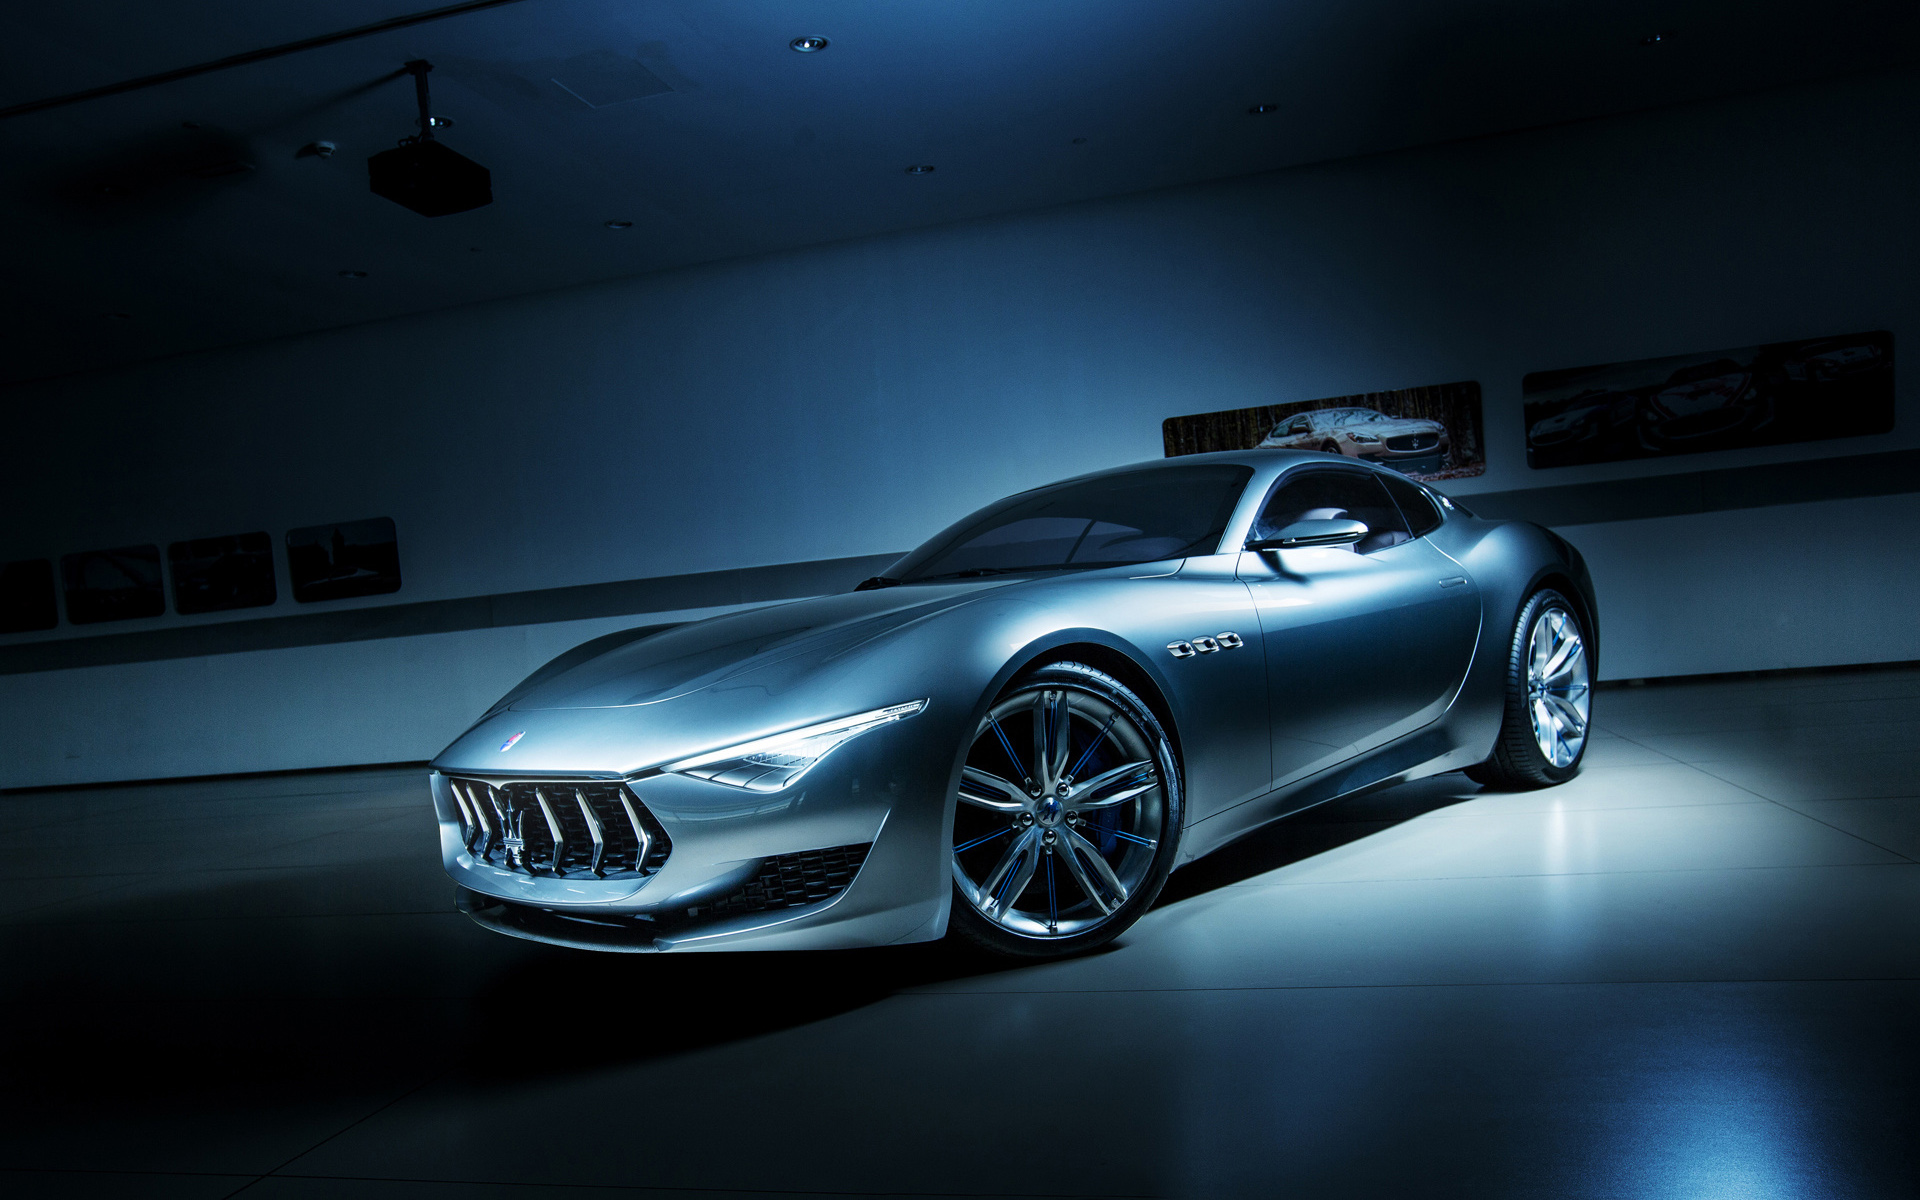 2016 Maserati Alfieri Wallpapers HD Wallpapers 1920x1200